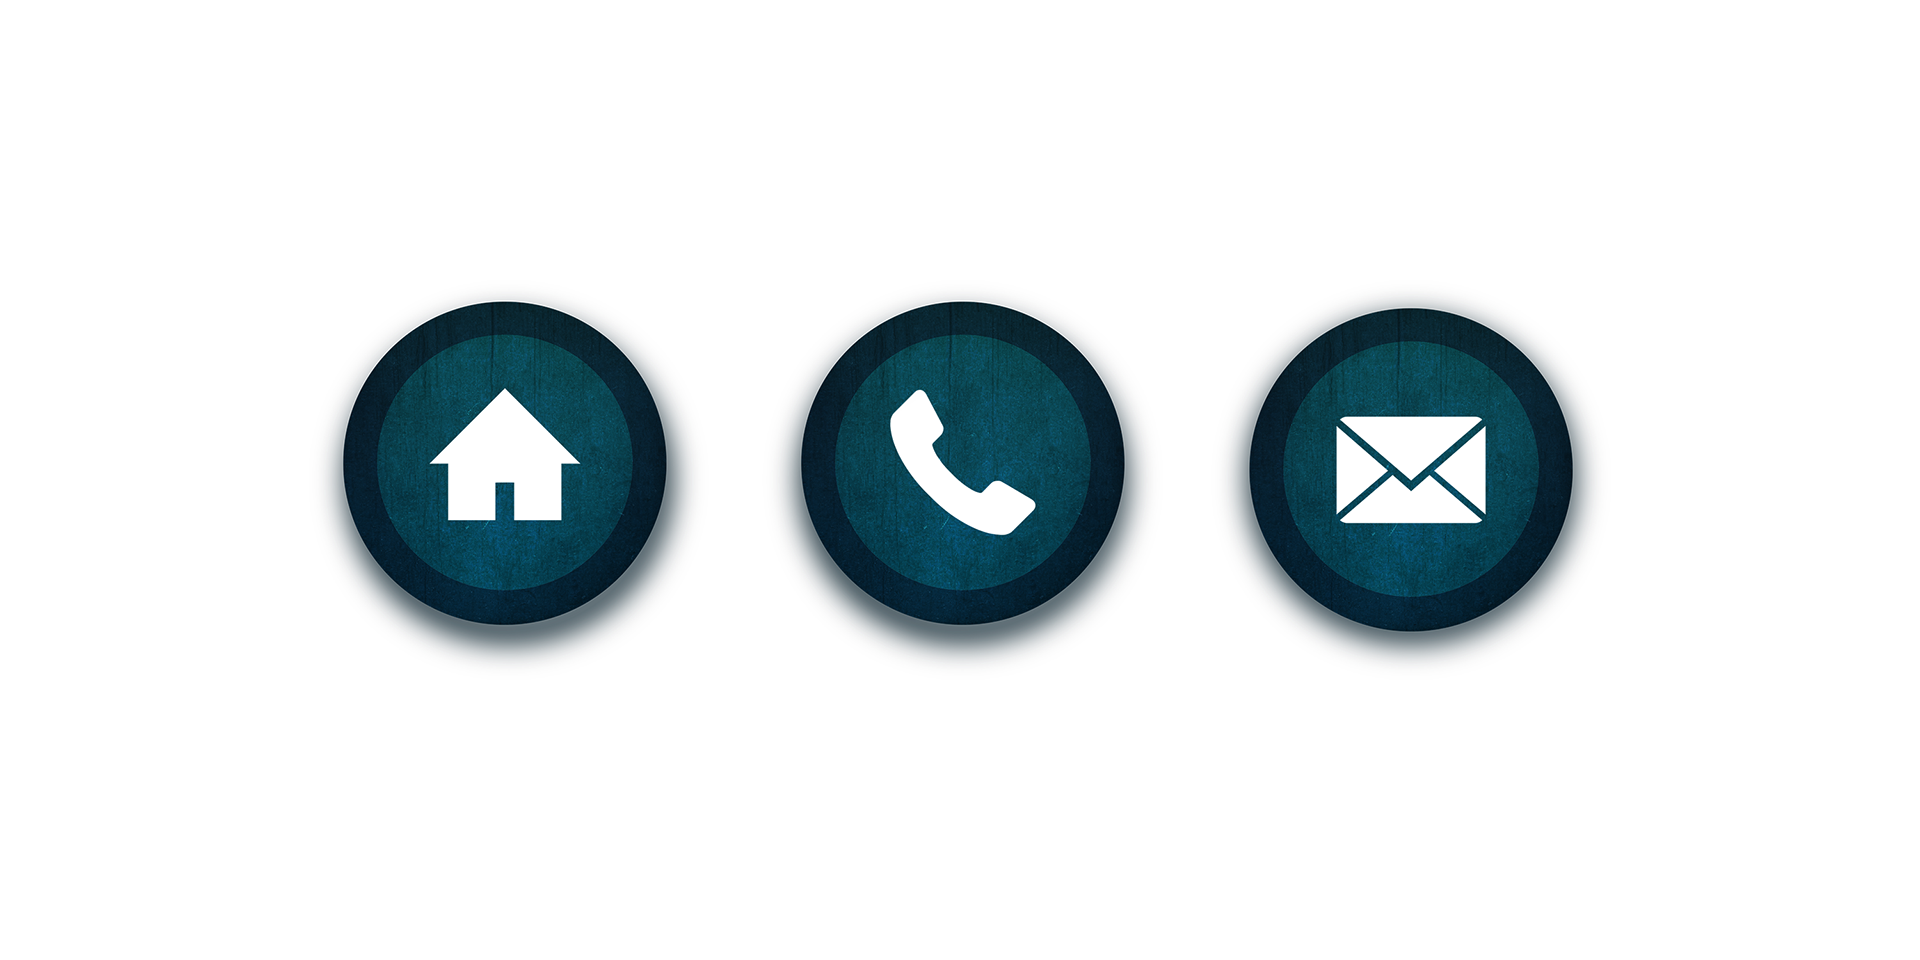 Contact buttons png. Peter stylianou icon redesign